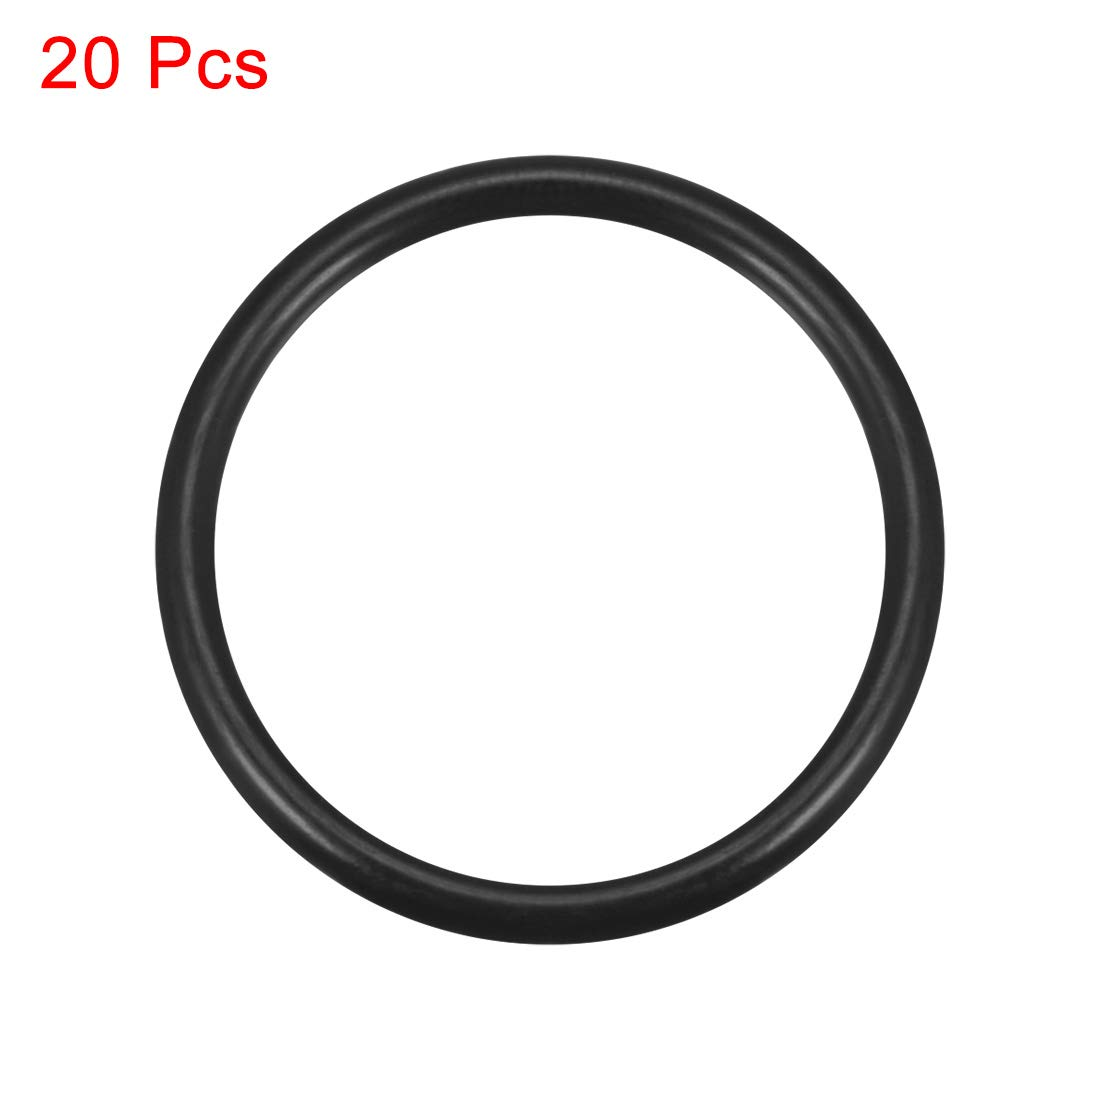 3.5mm Width 63mm Inner Diameter uxcell O-Rings Nitrile Rubber 70mm OD Round Seal Gasket 20pcs